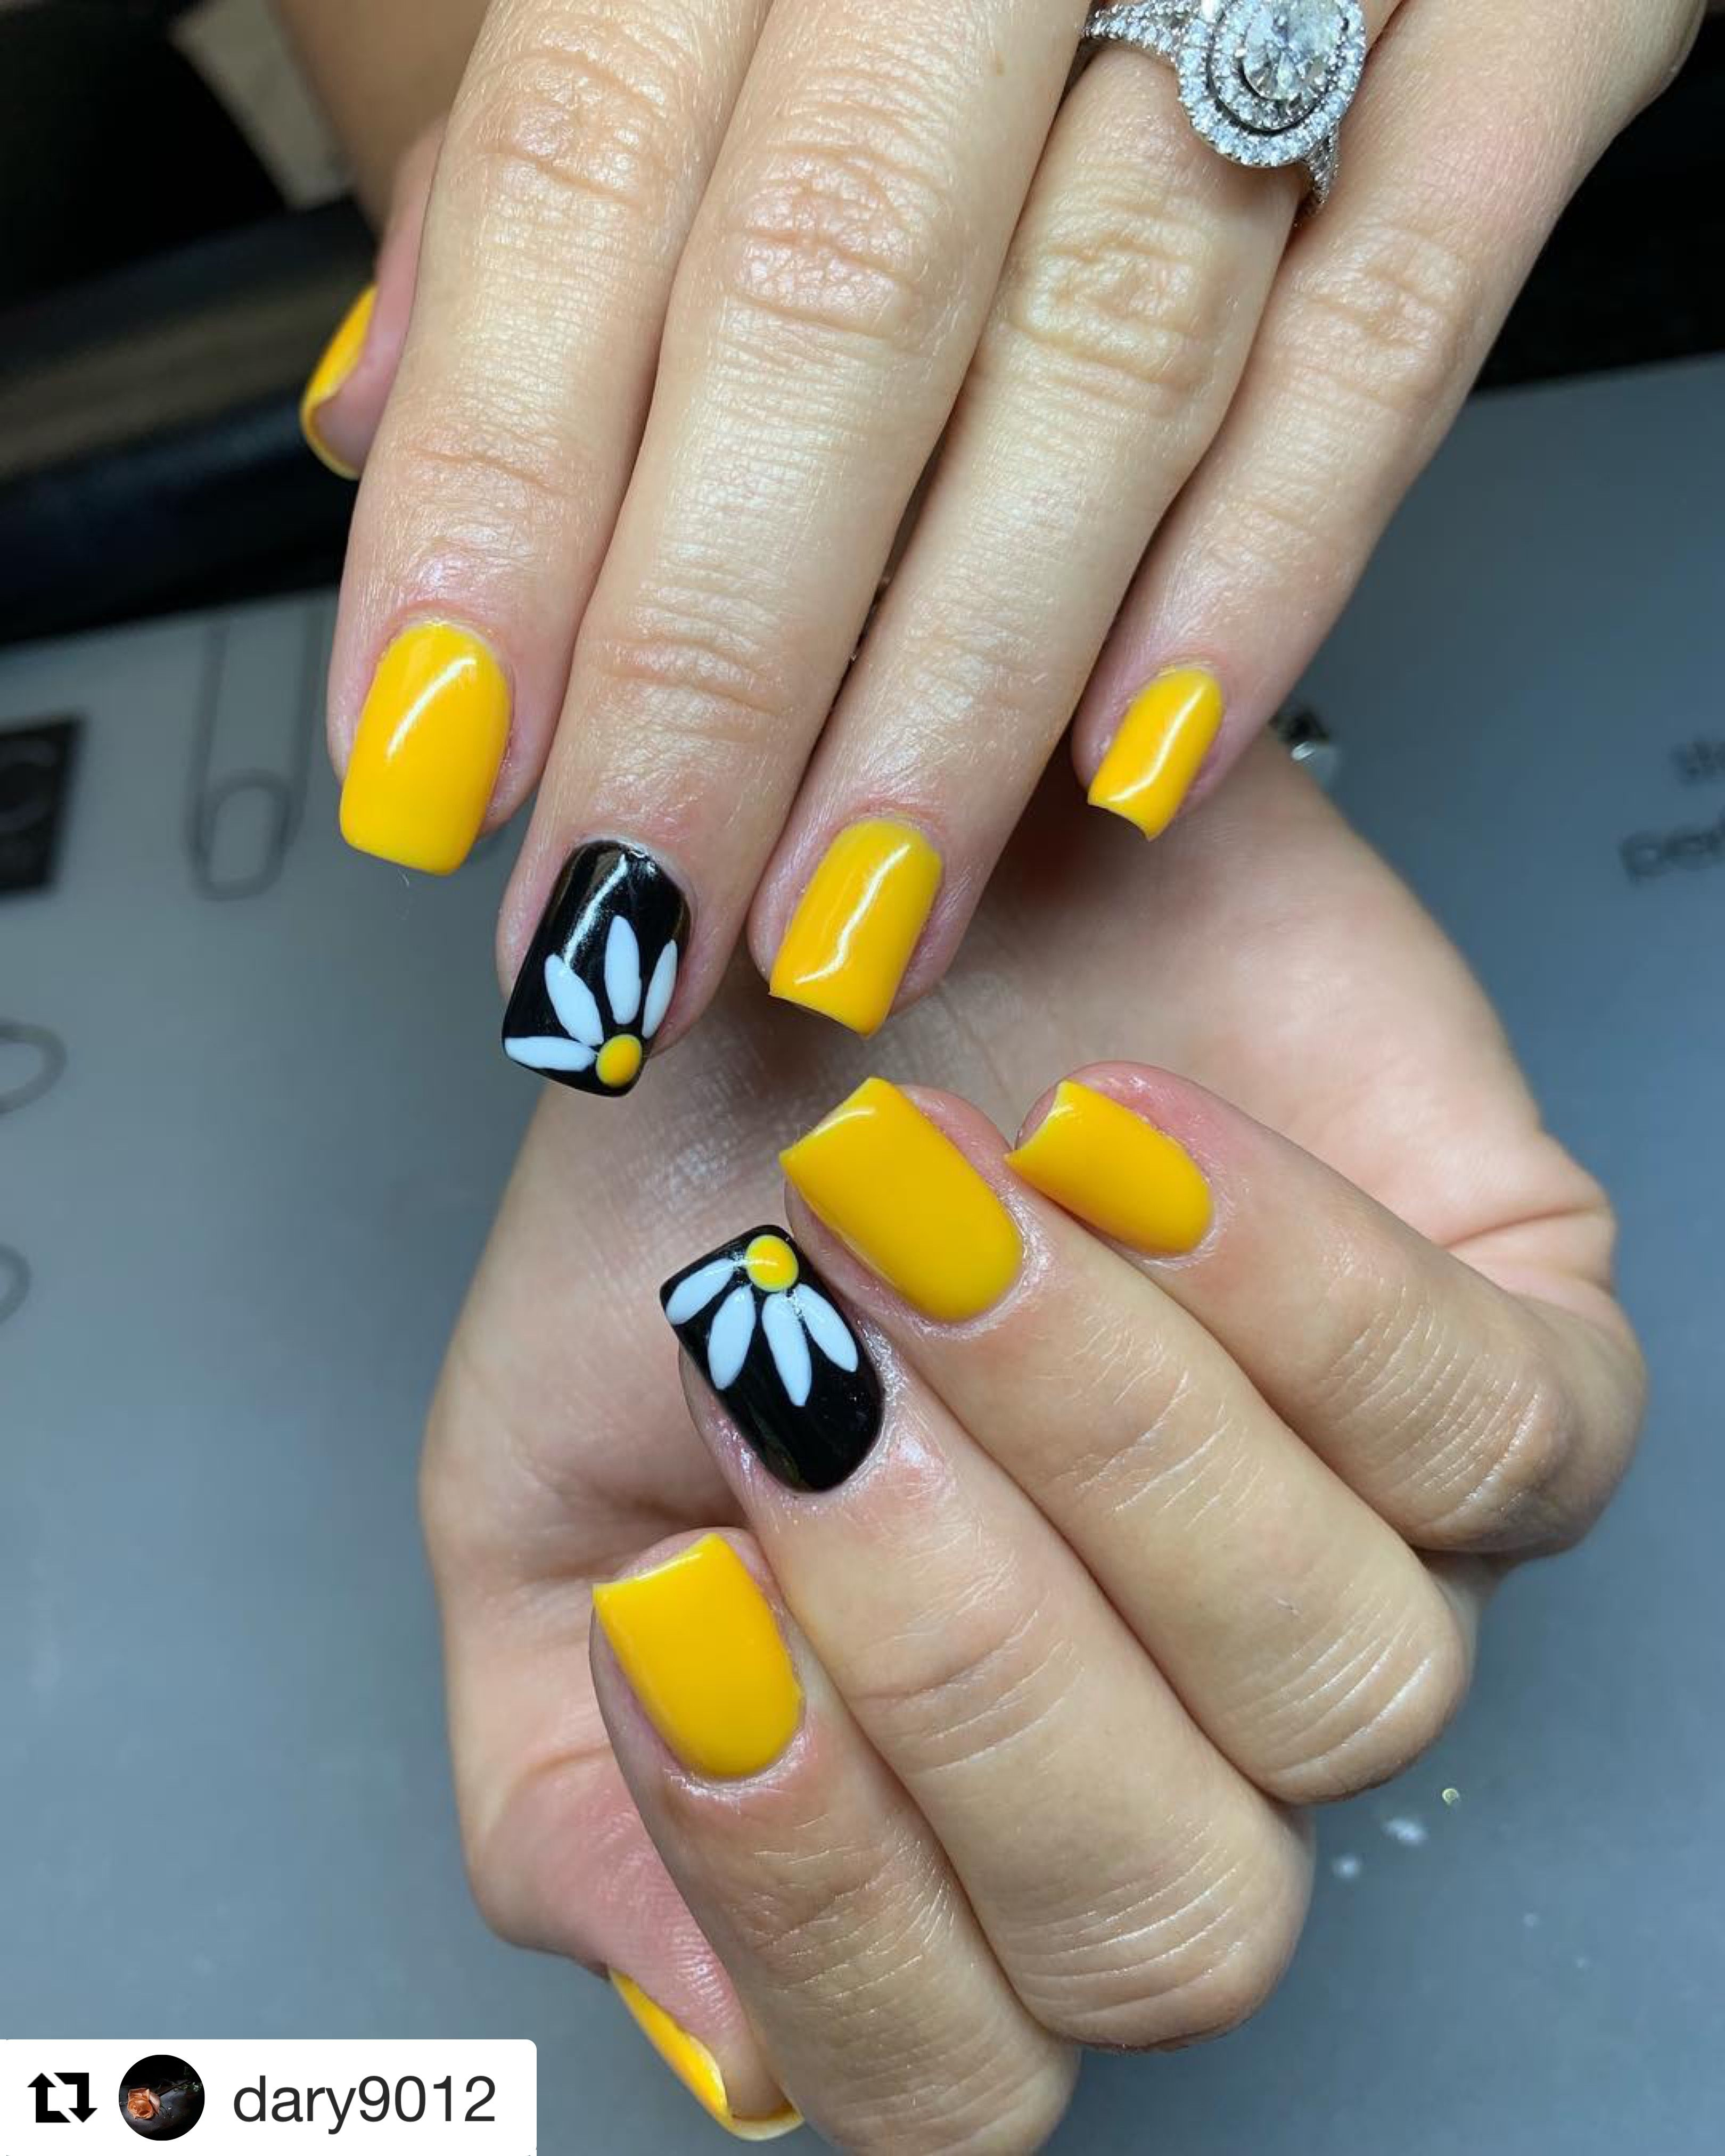 Nail design flower nails black and yellow daisy summer